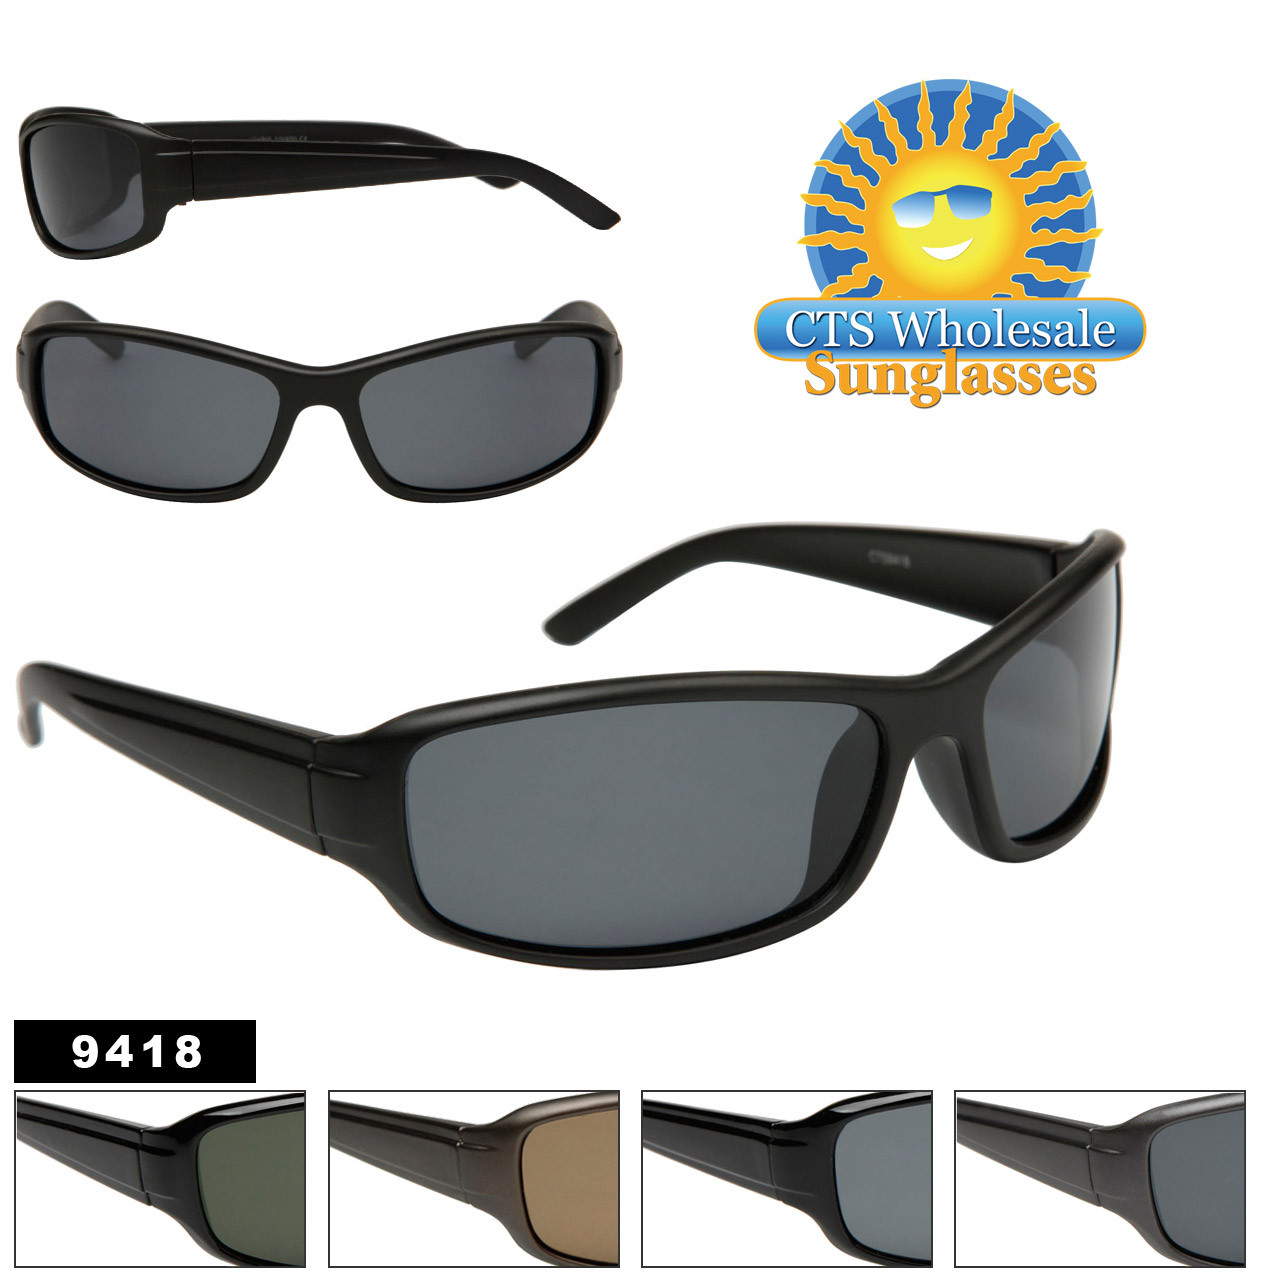 #9418 Polarized Sports Sunglasses